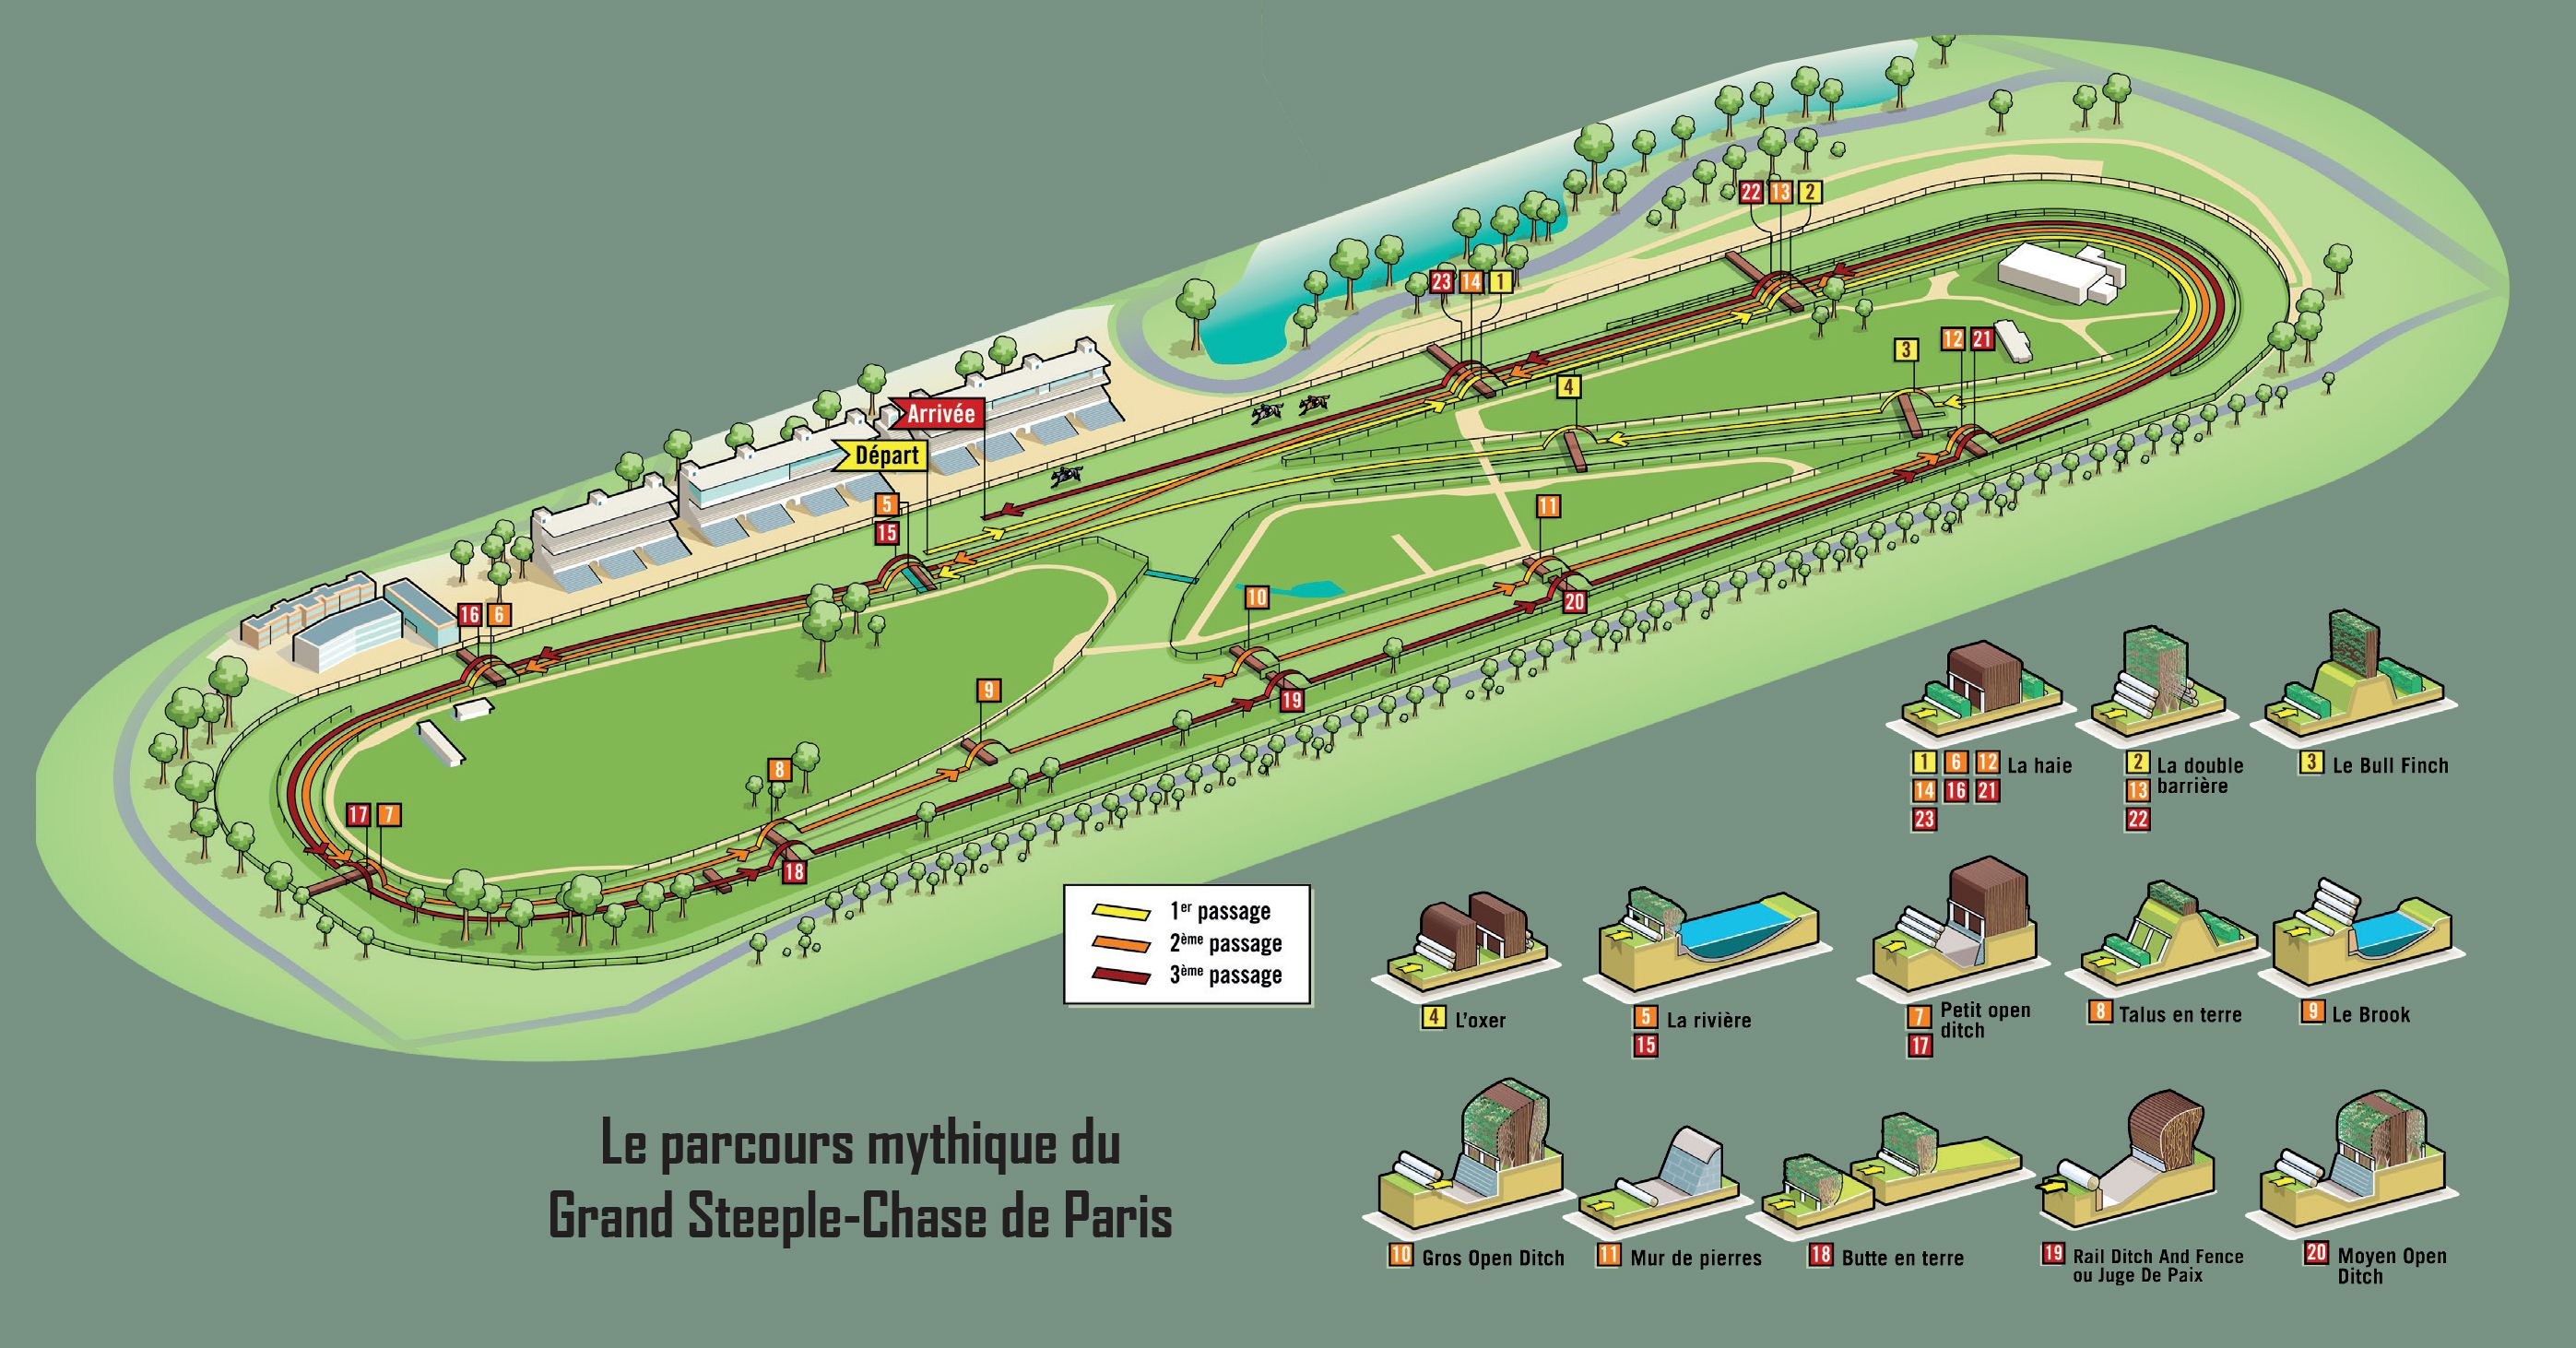 parcours_Steeple_chase_paris.jpg